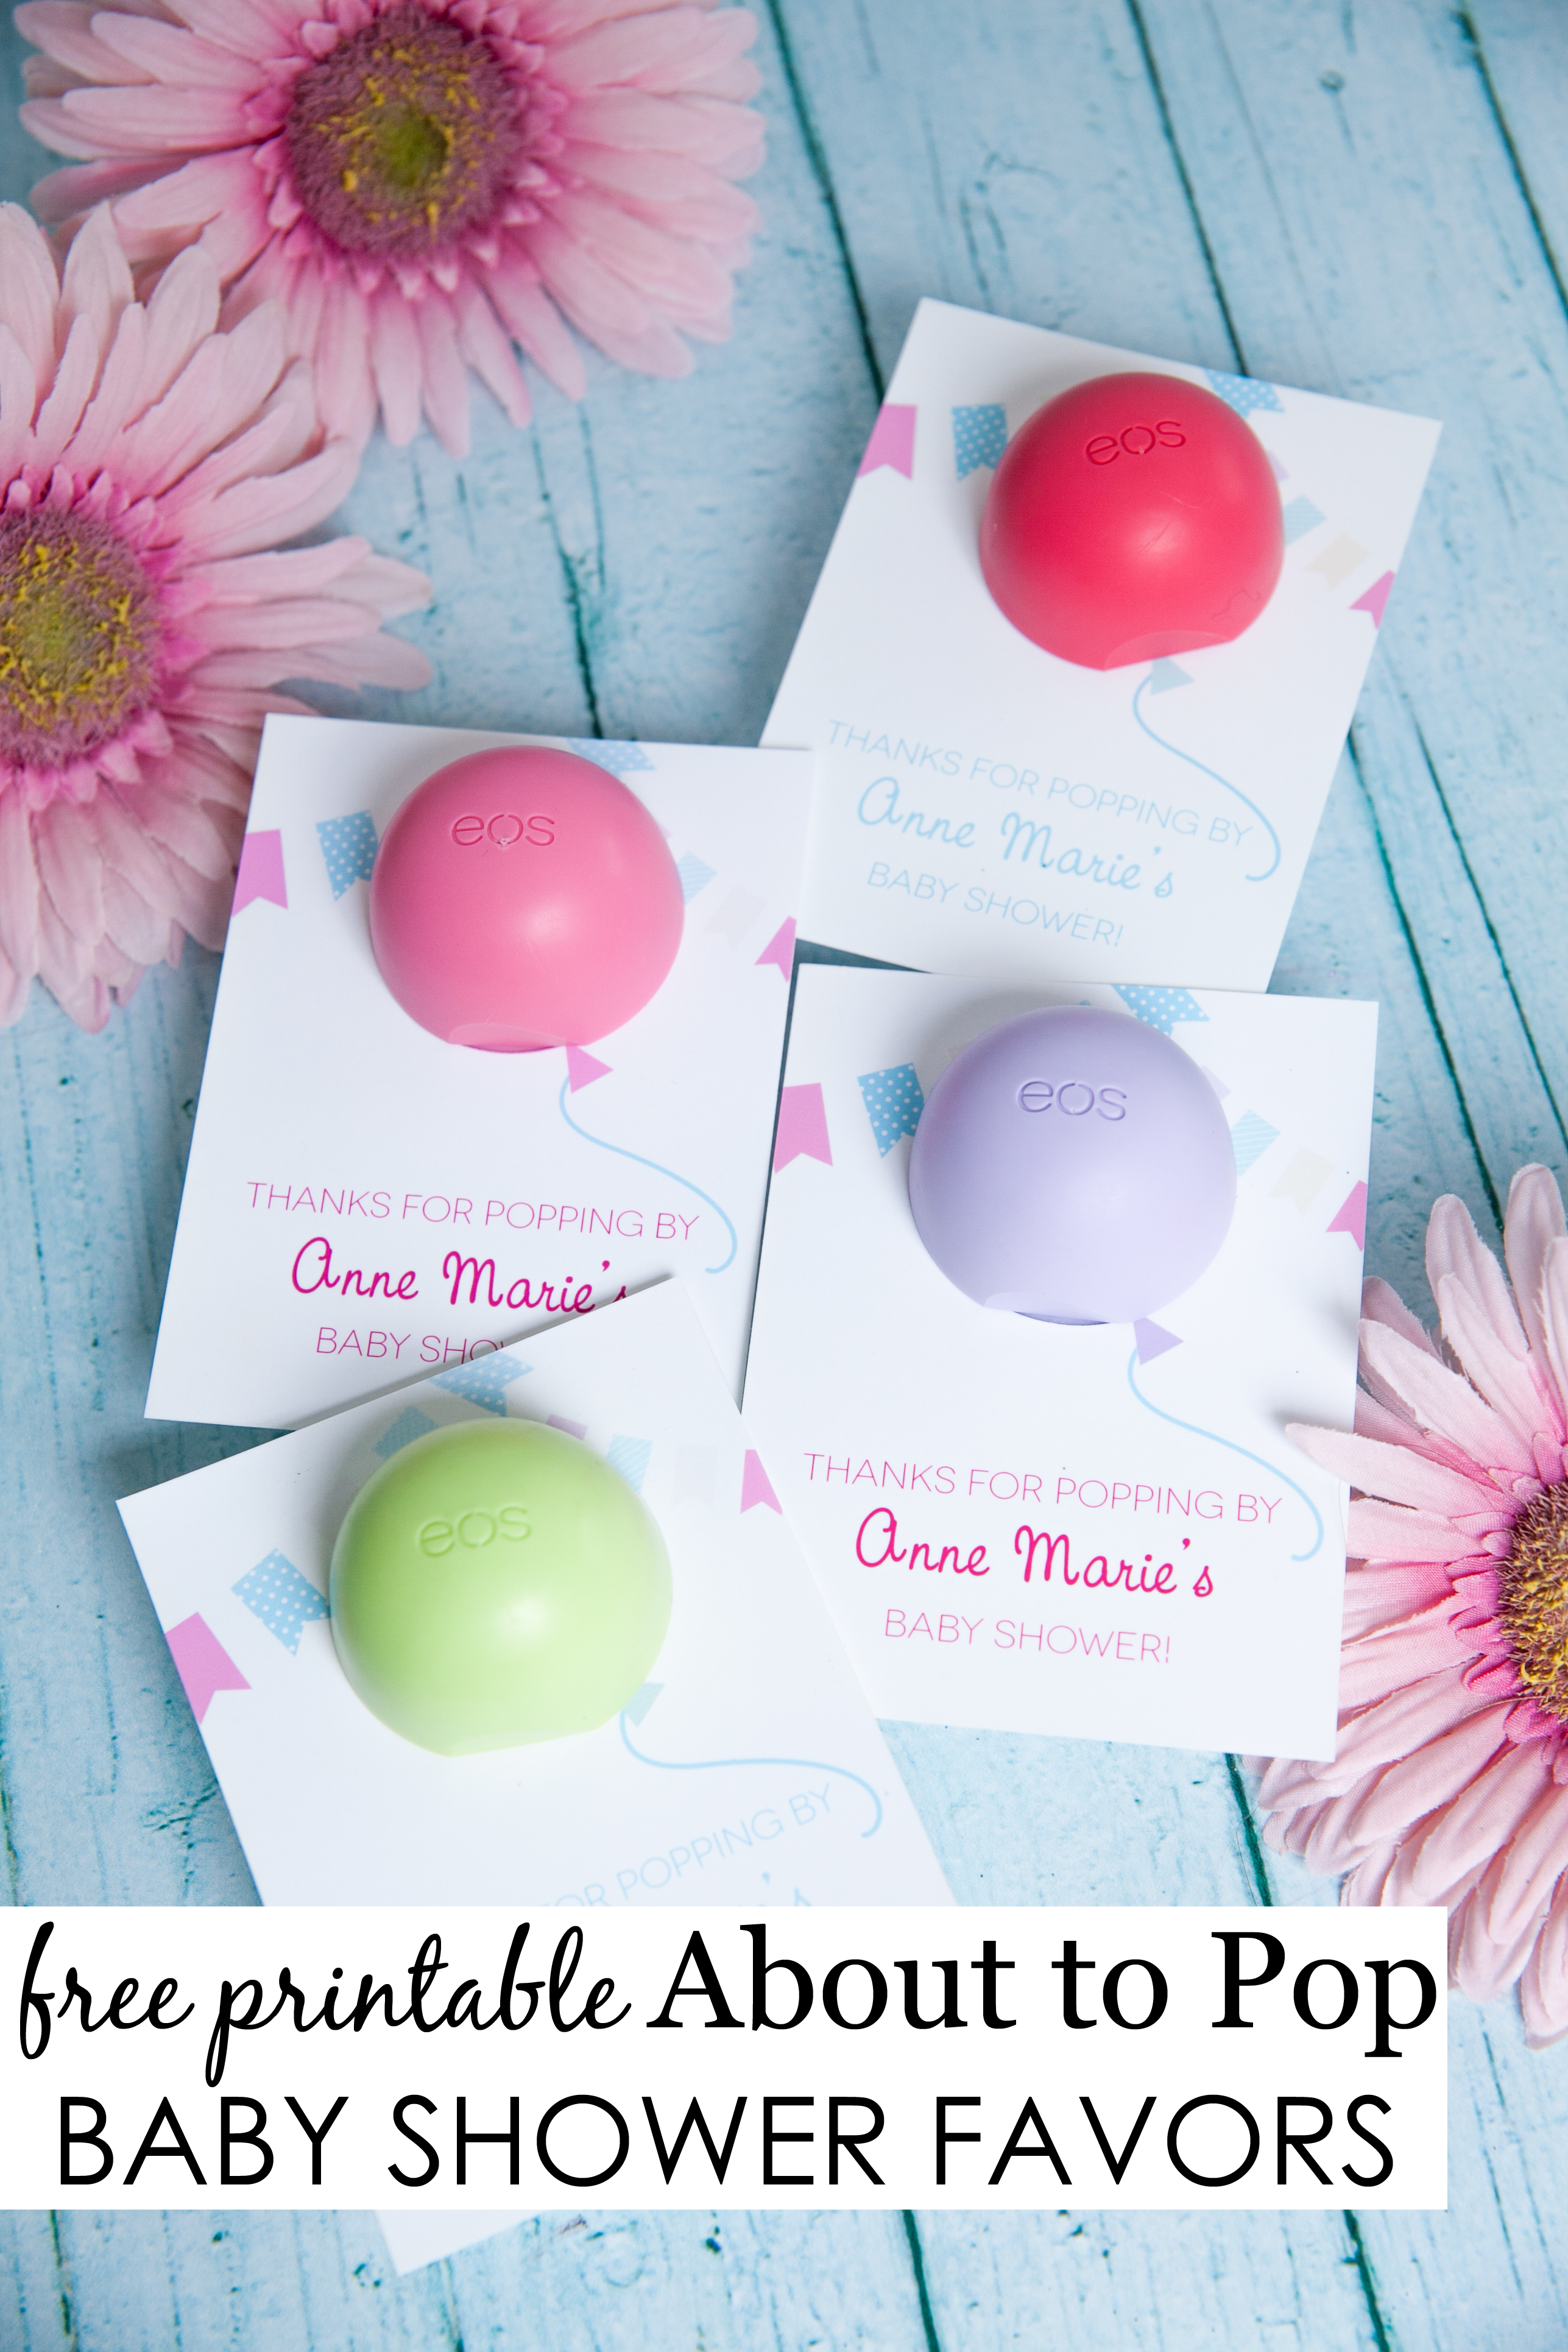 photo regarding Printable Baby Shower Decorations identified as 50+ Cost-free Child Shower Printables for a Great Celebration